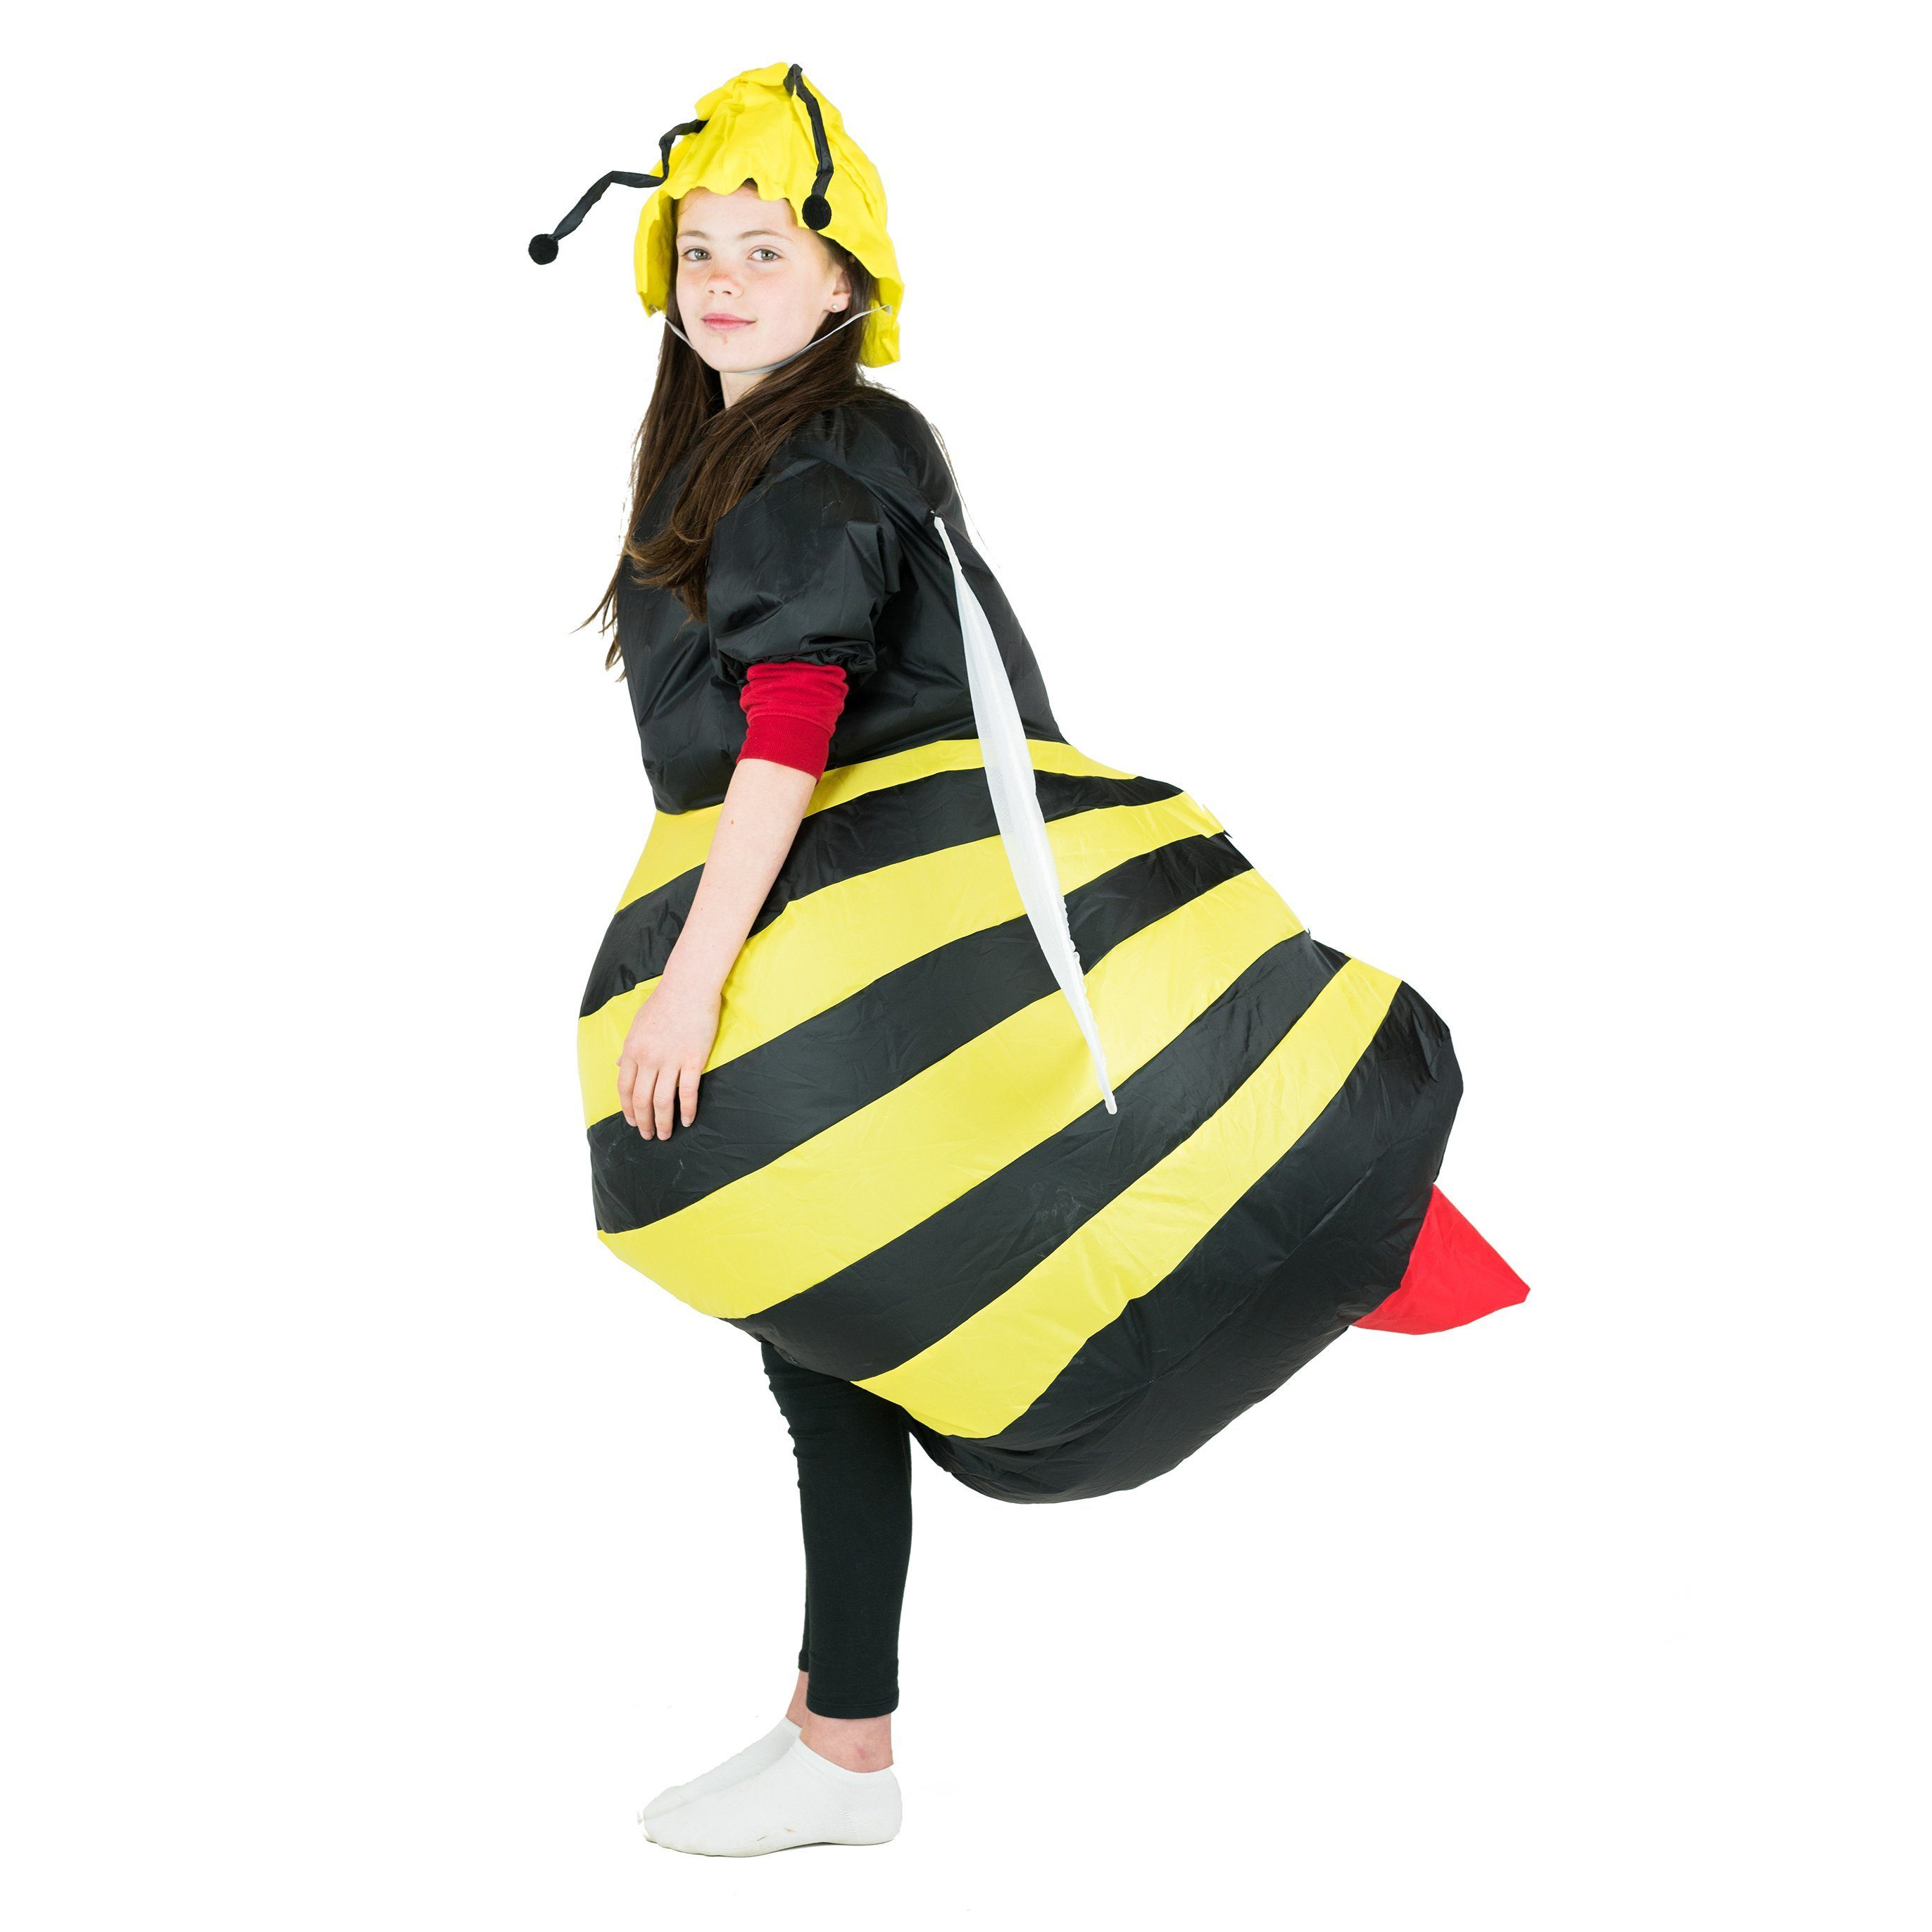 Kids Inflatable Bee Costume  sc 1 st  Bodysocks UK & Inflatable Costumes u0026 Inflatable Fancy Dress u2013 Bodysocks UK